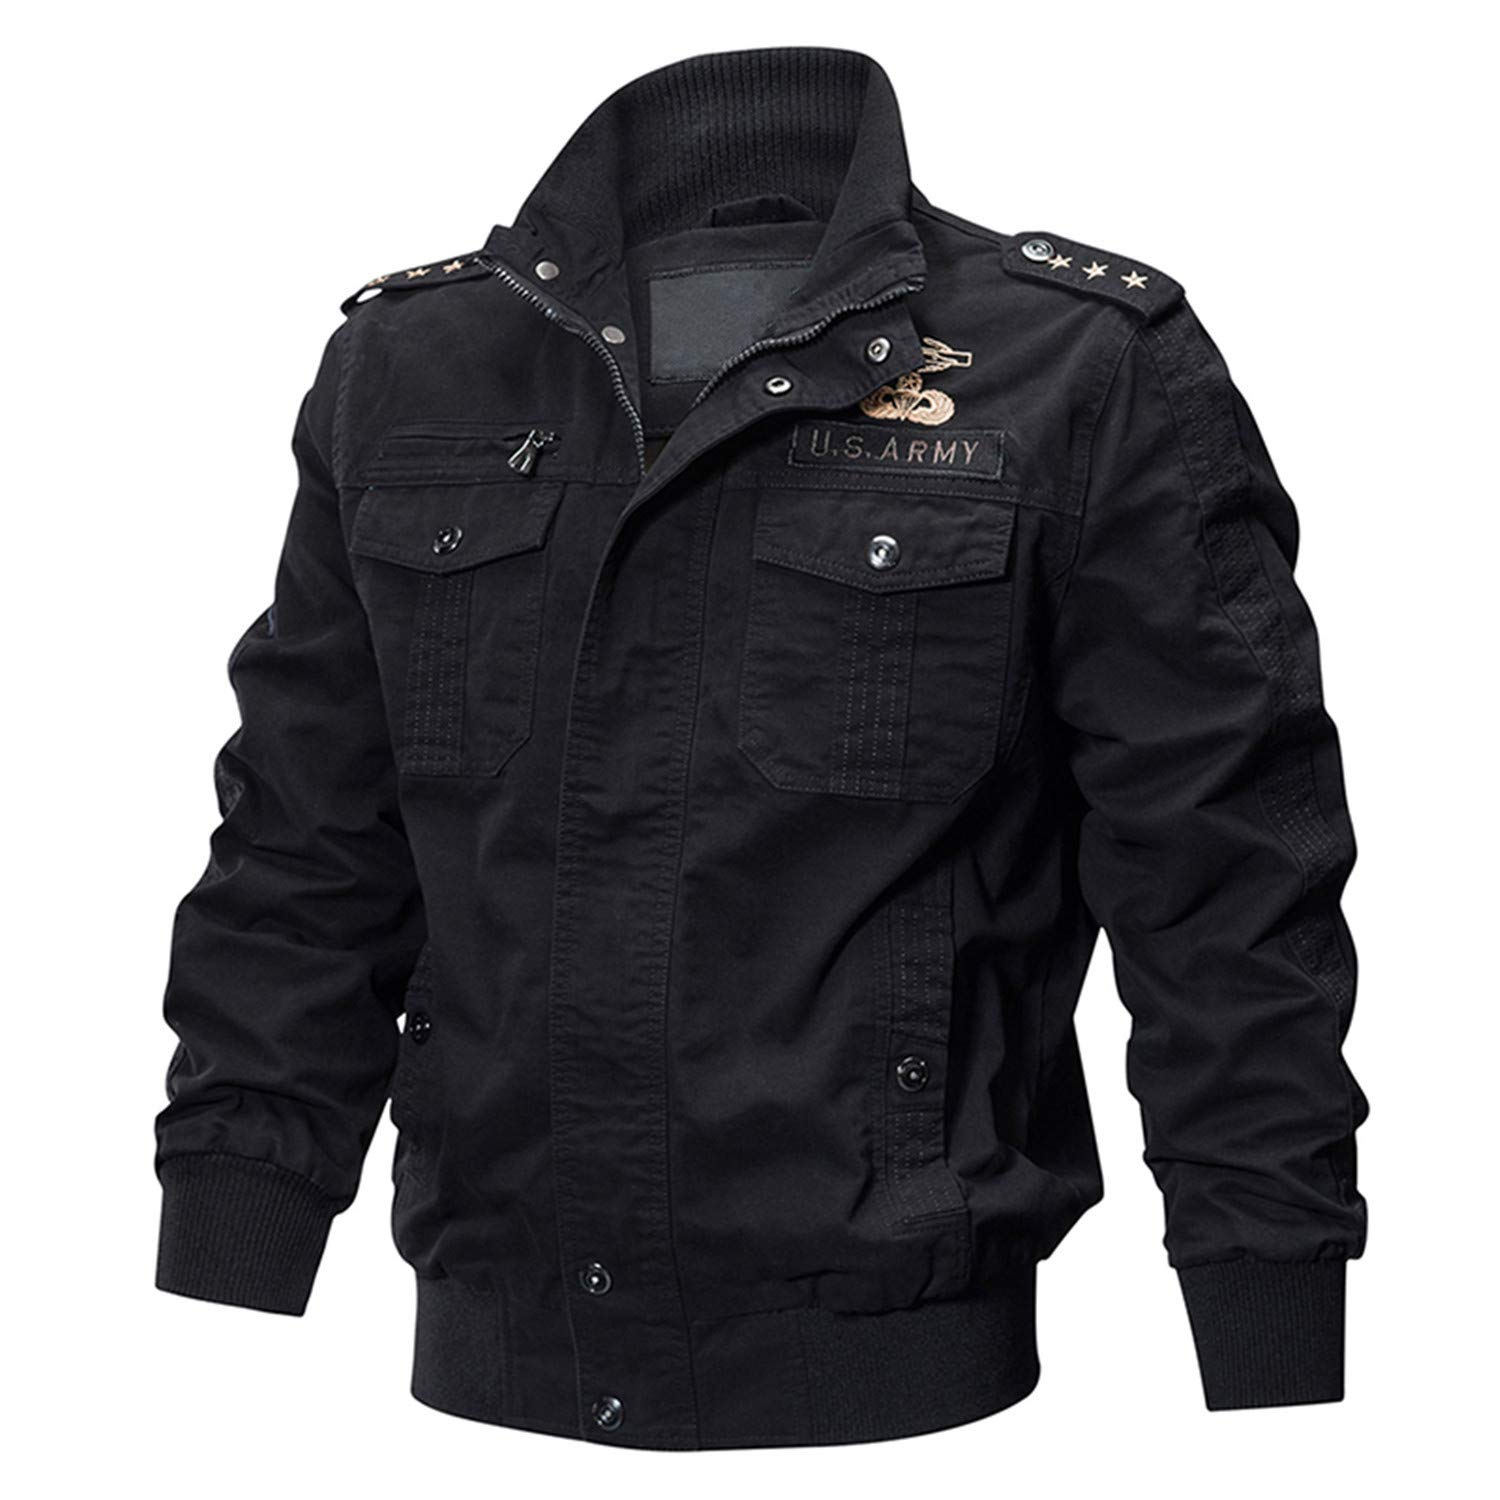 Killer Autumn Winter Military Tactical Jacket Men Cotton Bomber Jackets Cargo Flight Jacket Outwear